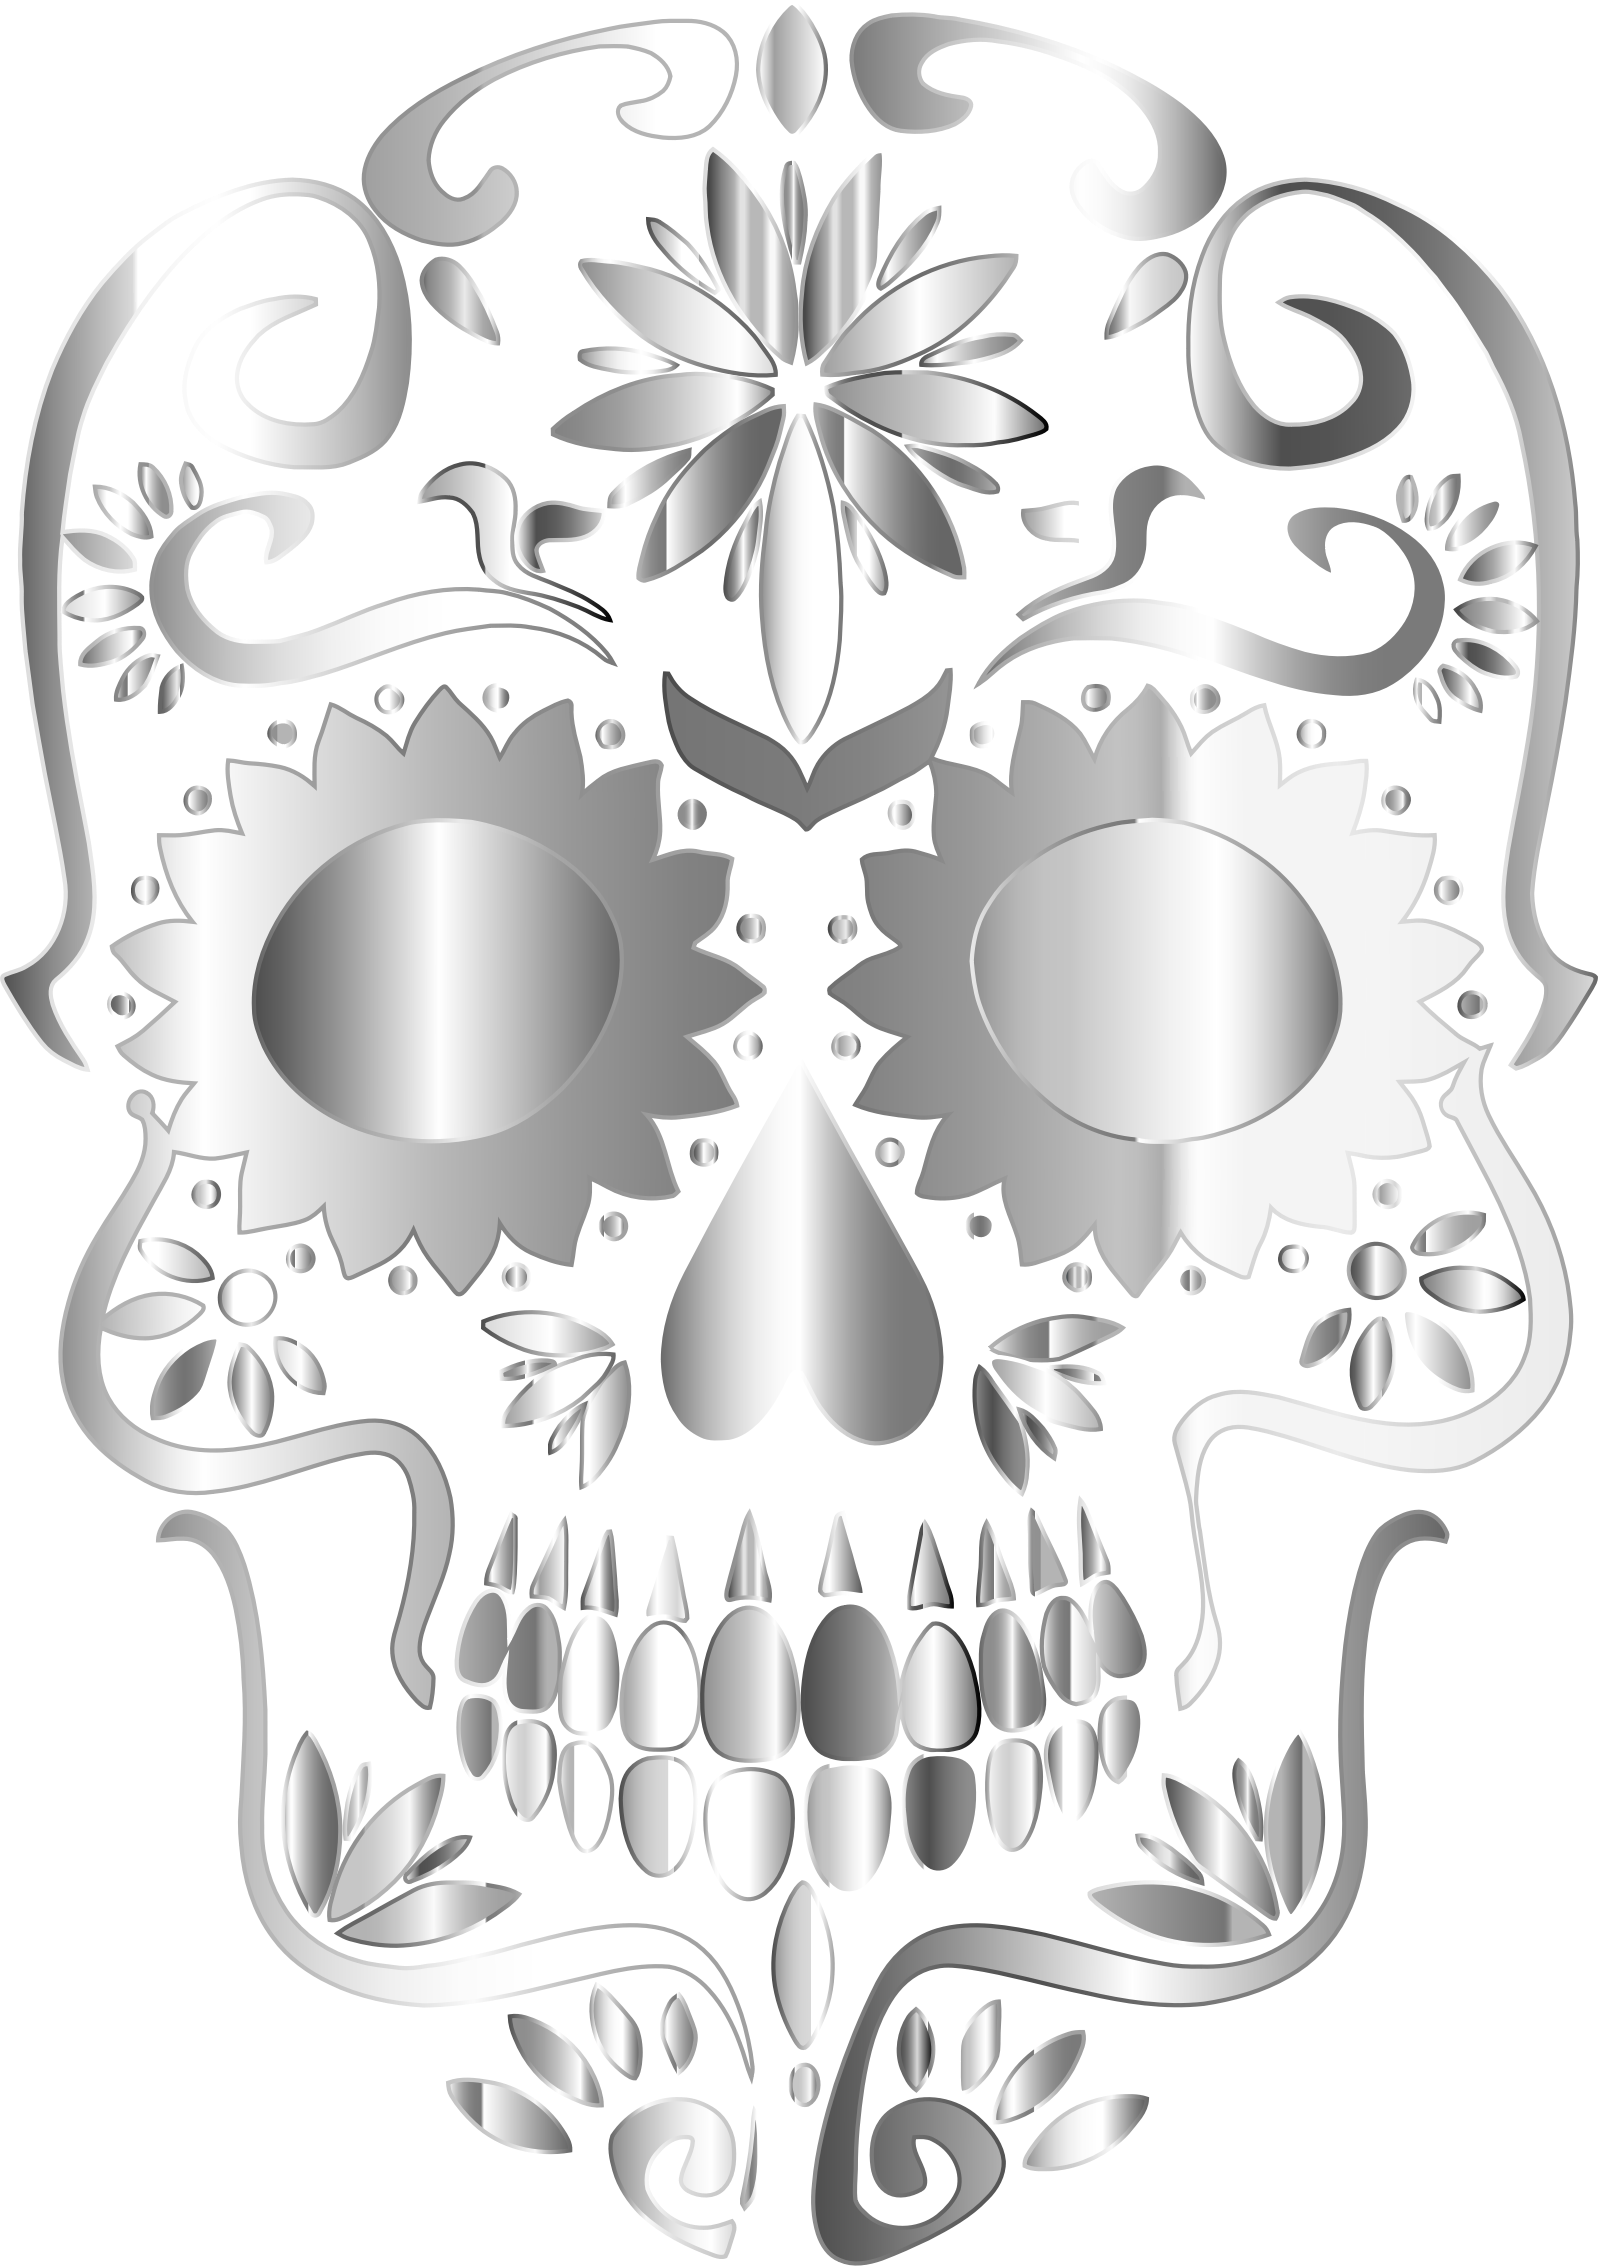 Prismatic Sugar Skull Silhouette 3 No Background by GDJ